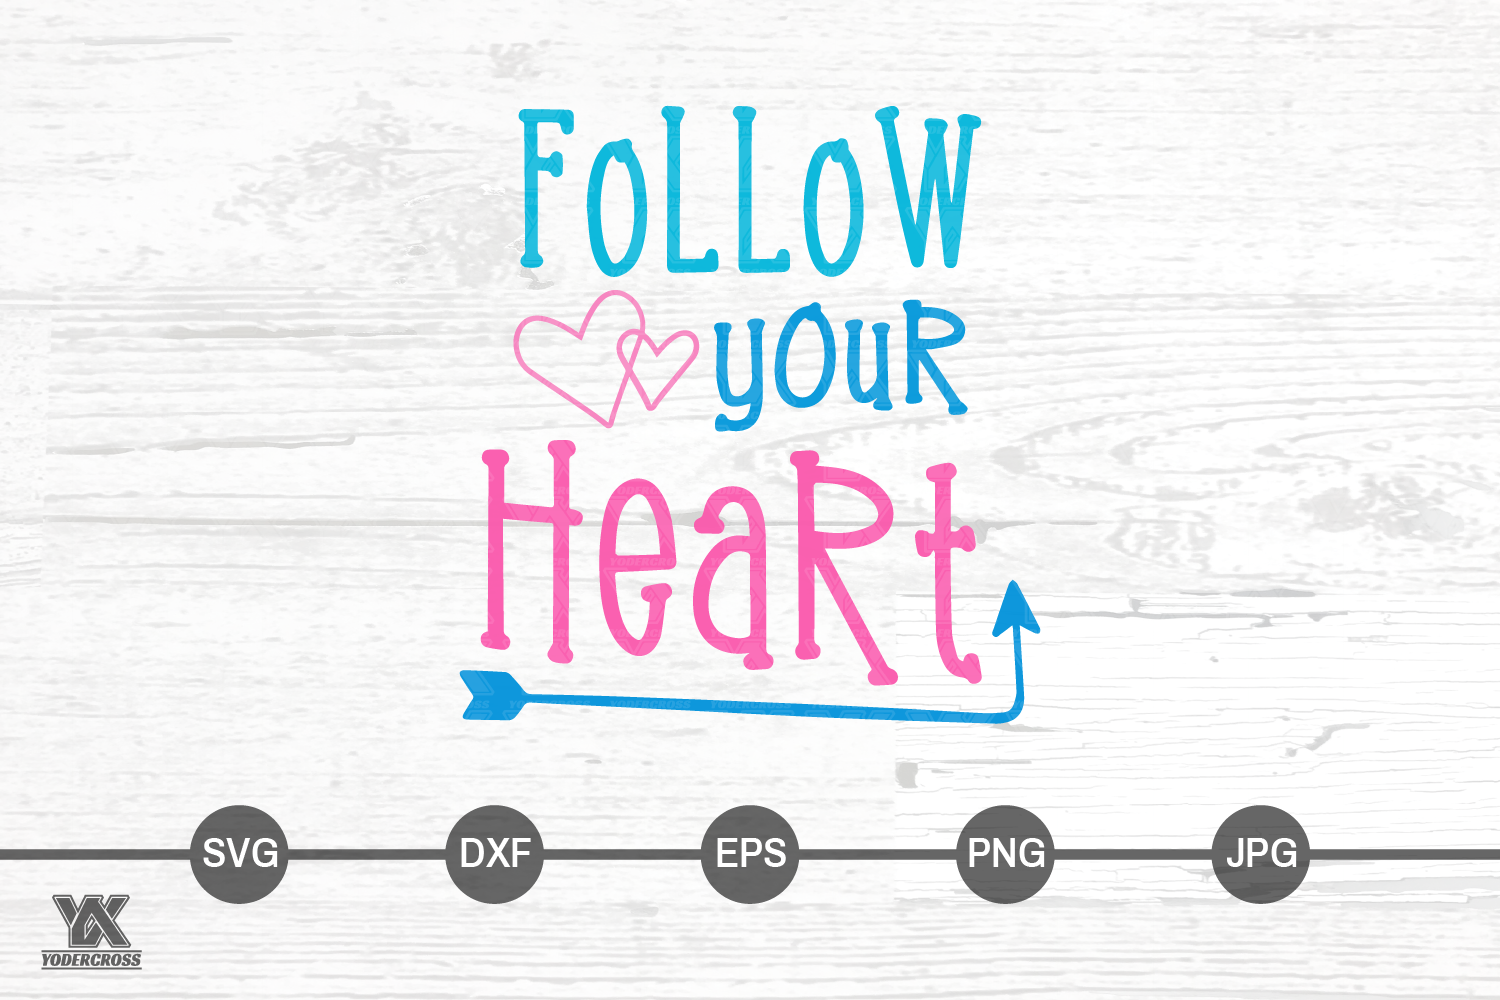 Follow Your Heart SVG example image 3